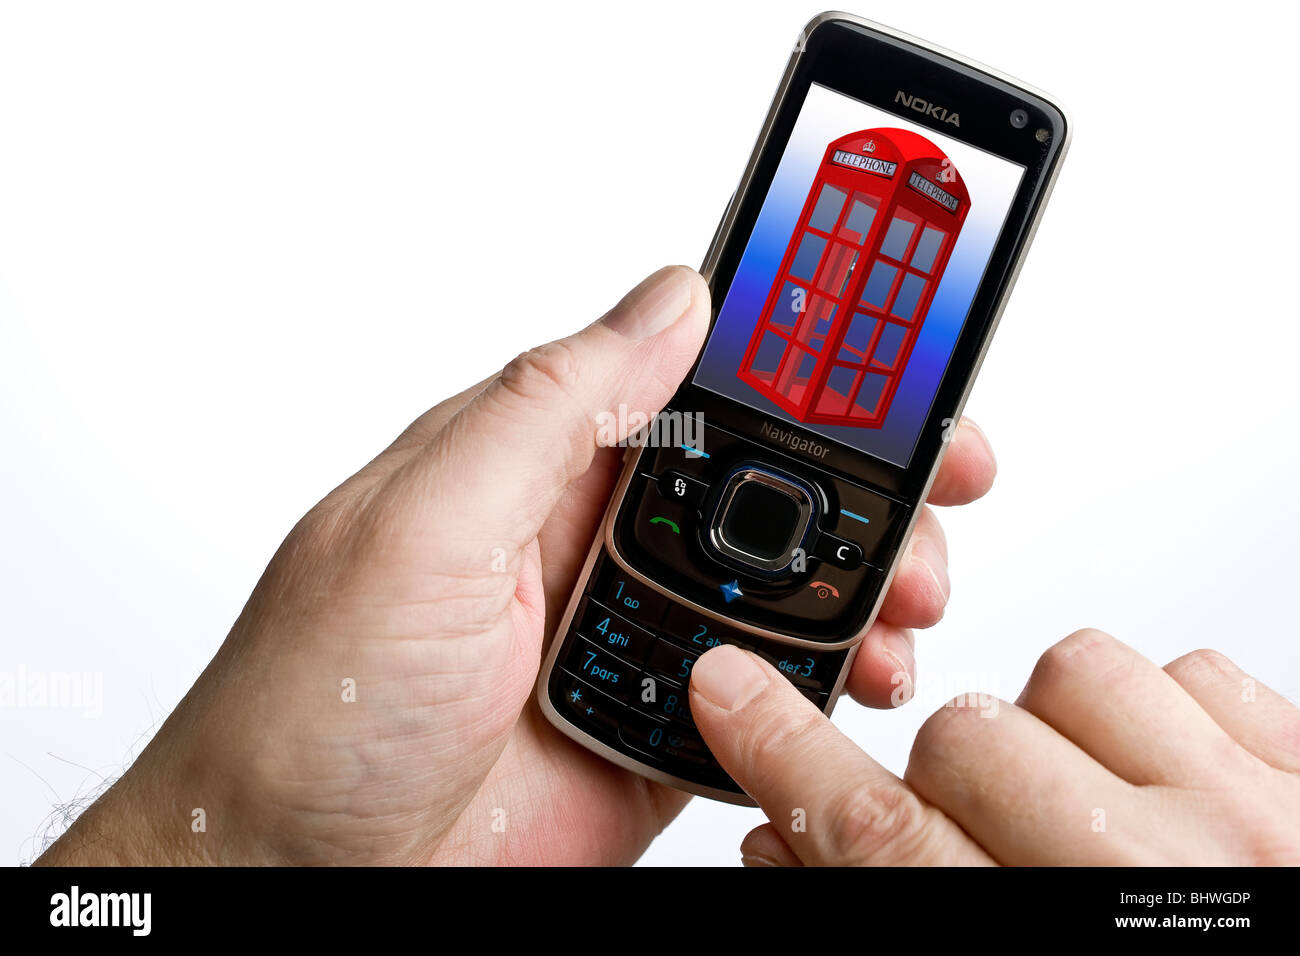 Close up of a mobile phone with an old enlish style public telephone box on the screen - Stock Image